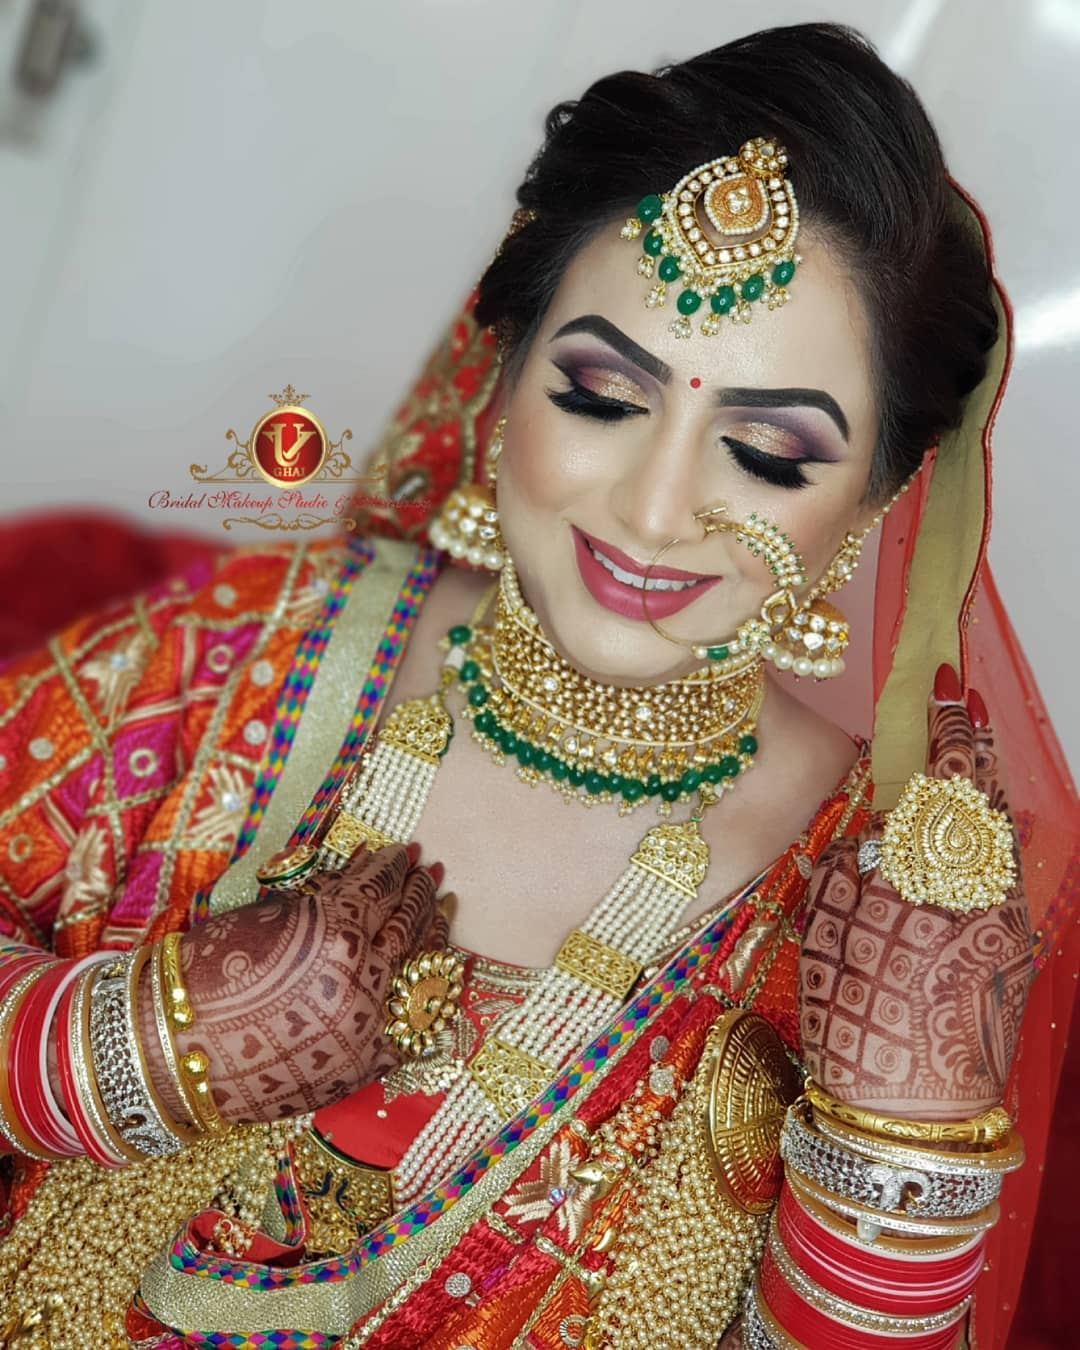 Dewy Indian Wedding Makeup Ideas to Look Like Celebs